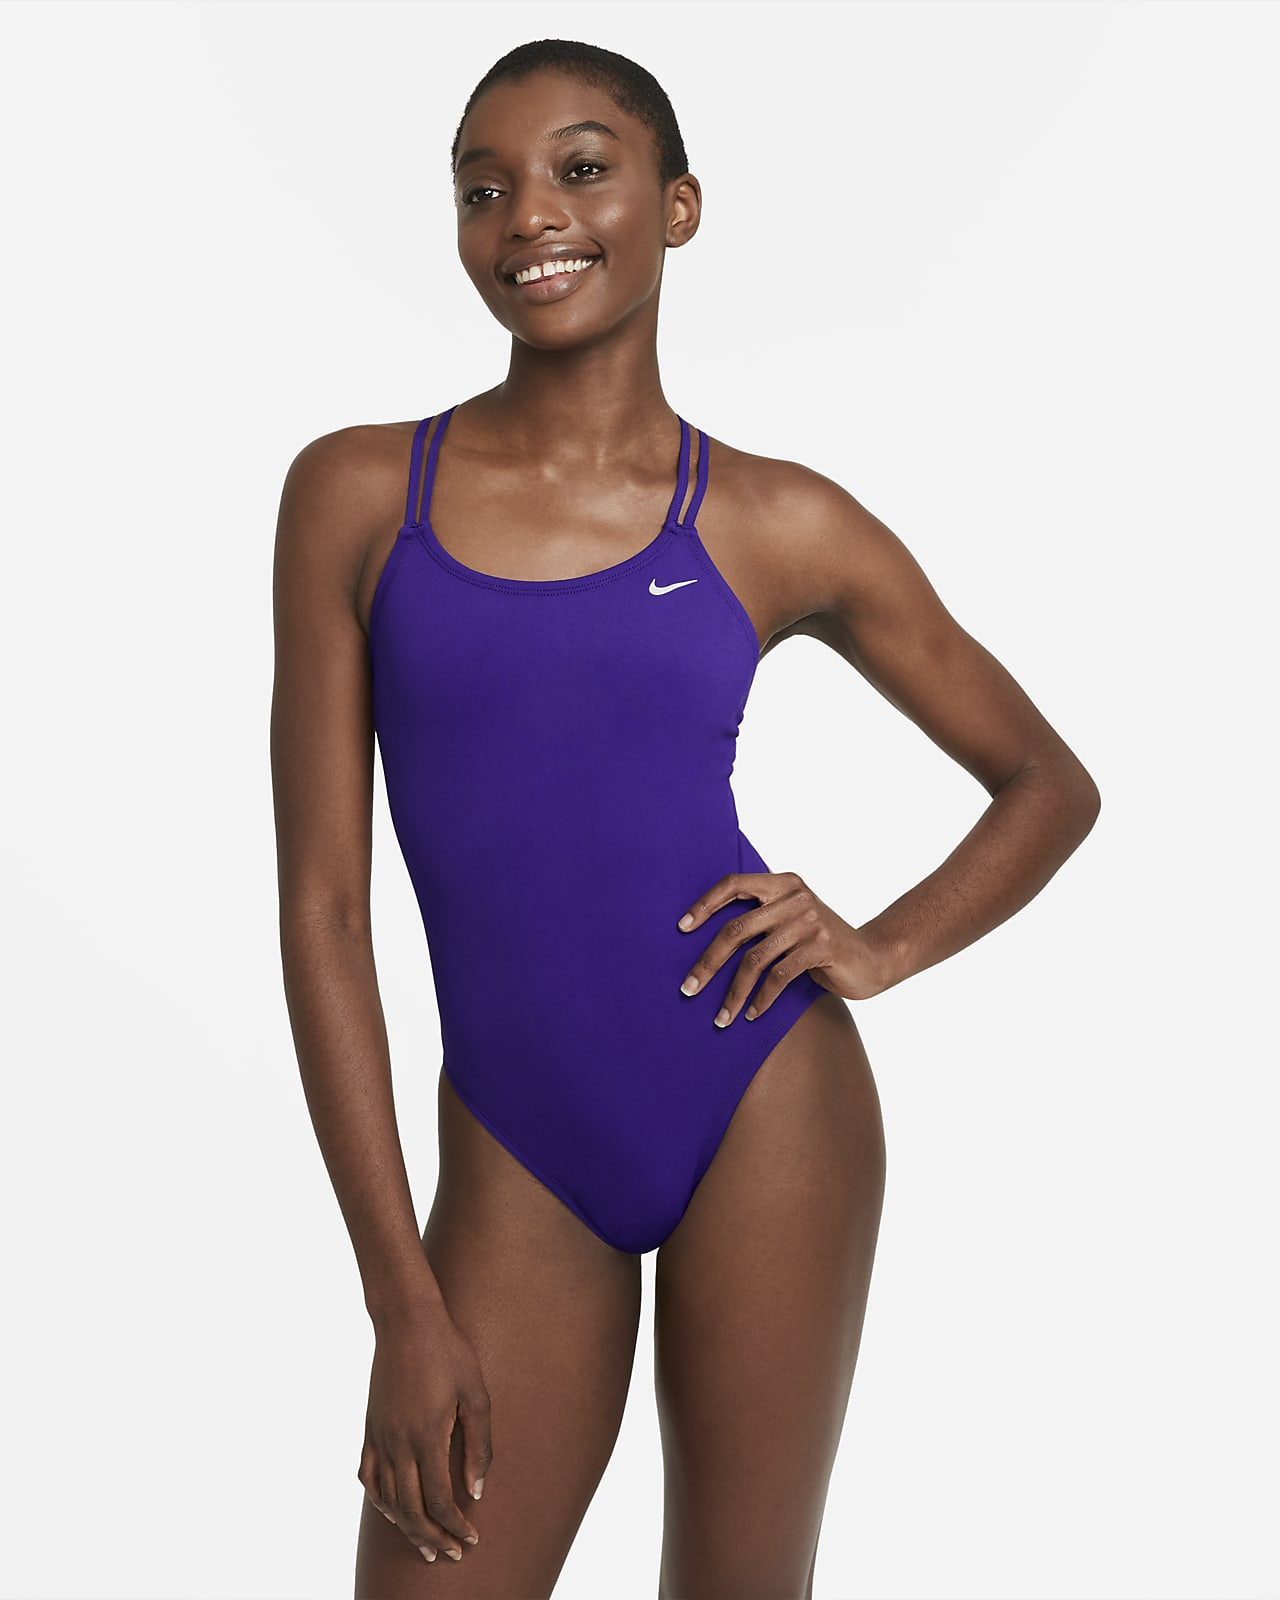 Nike HydraStrong Solid Women's Spiderback 1-Piece Swimsuit